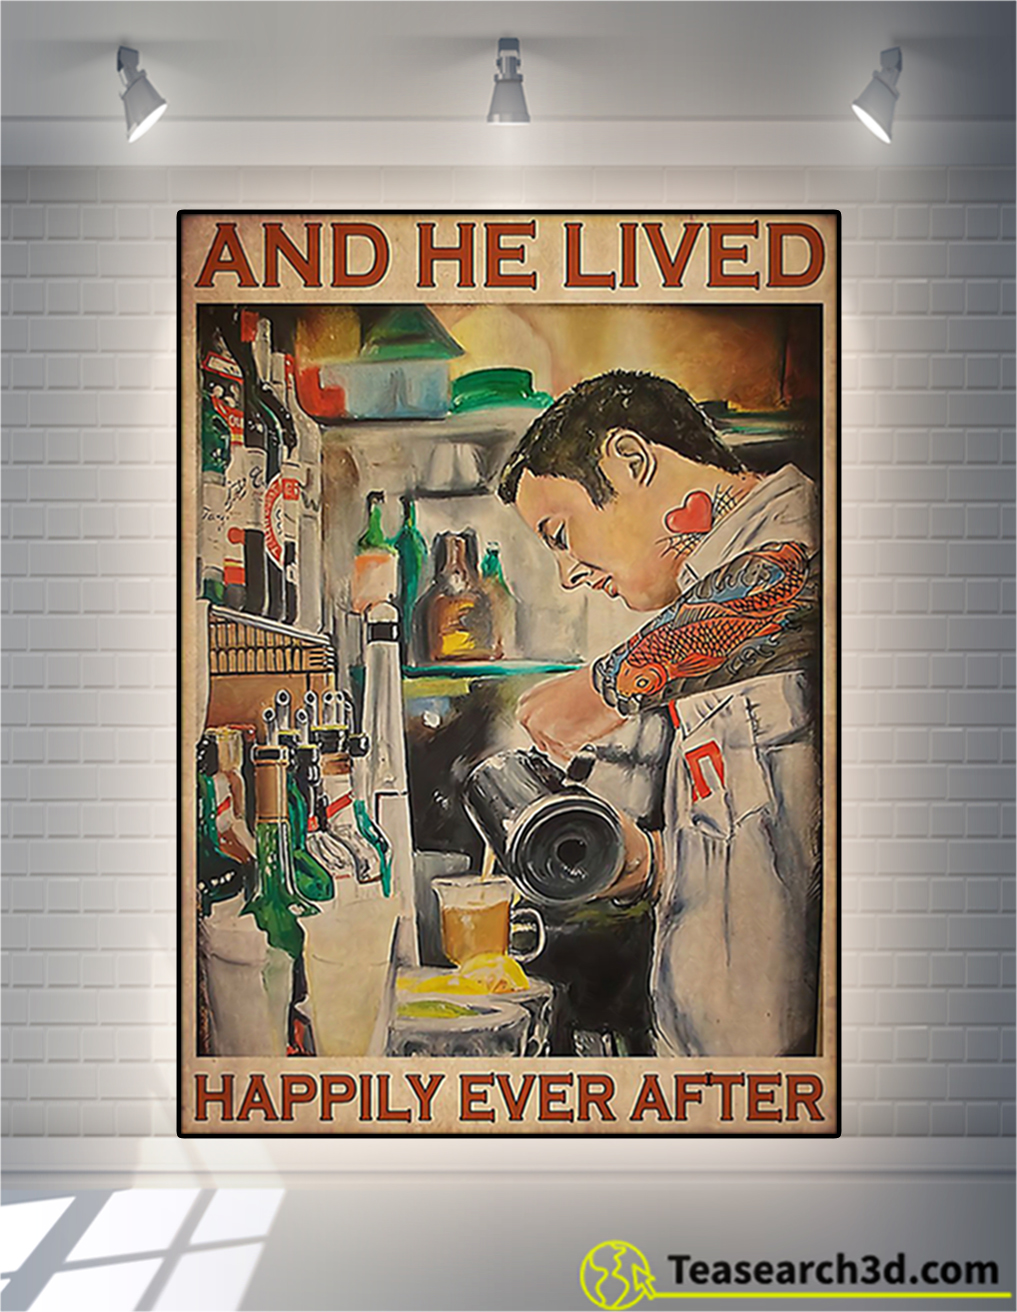 Bartender and he lived happily ever after poster